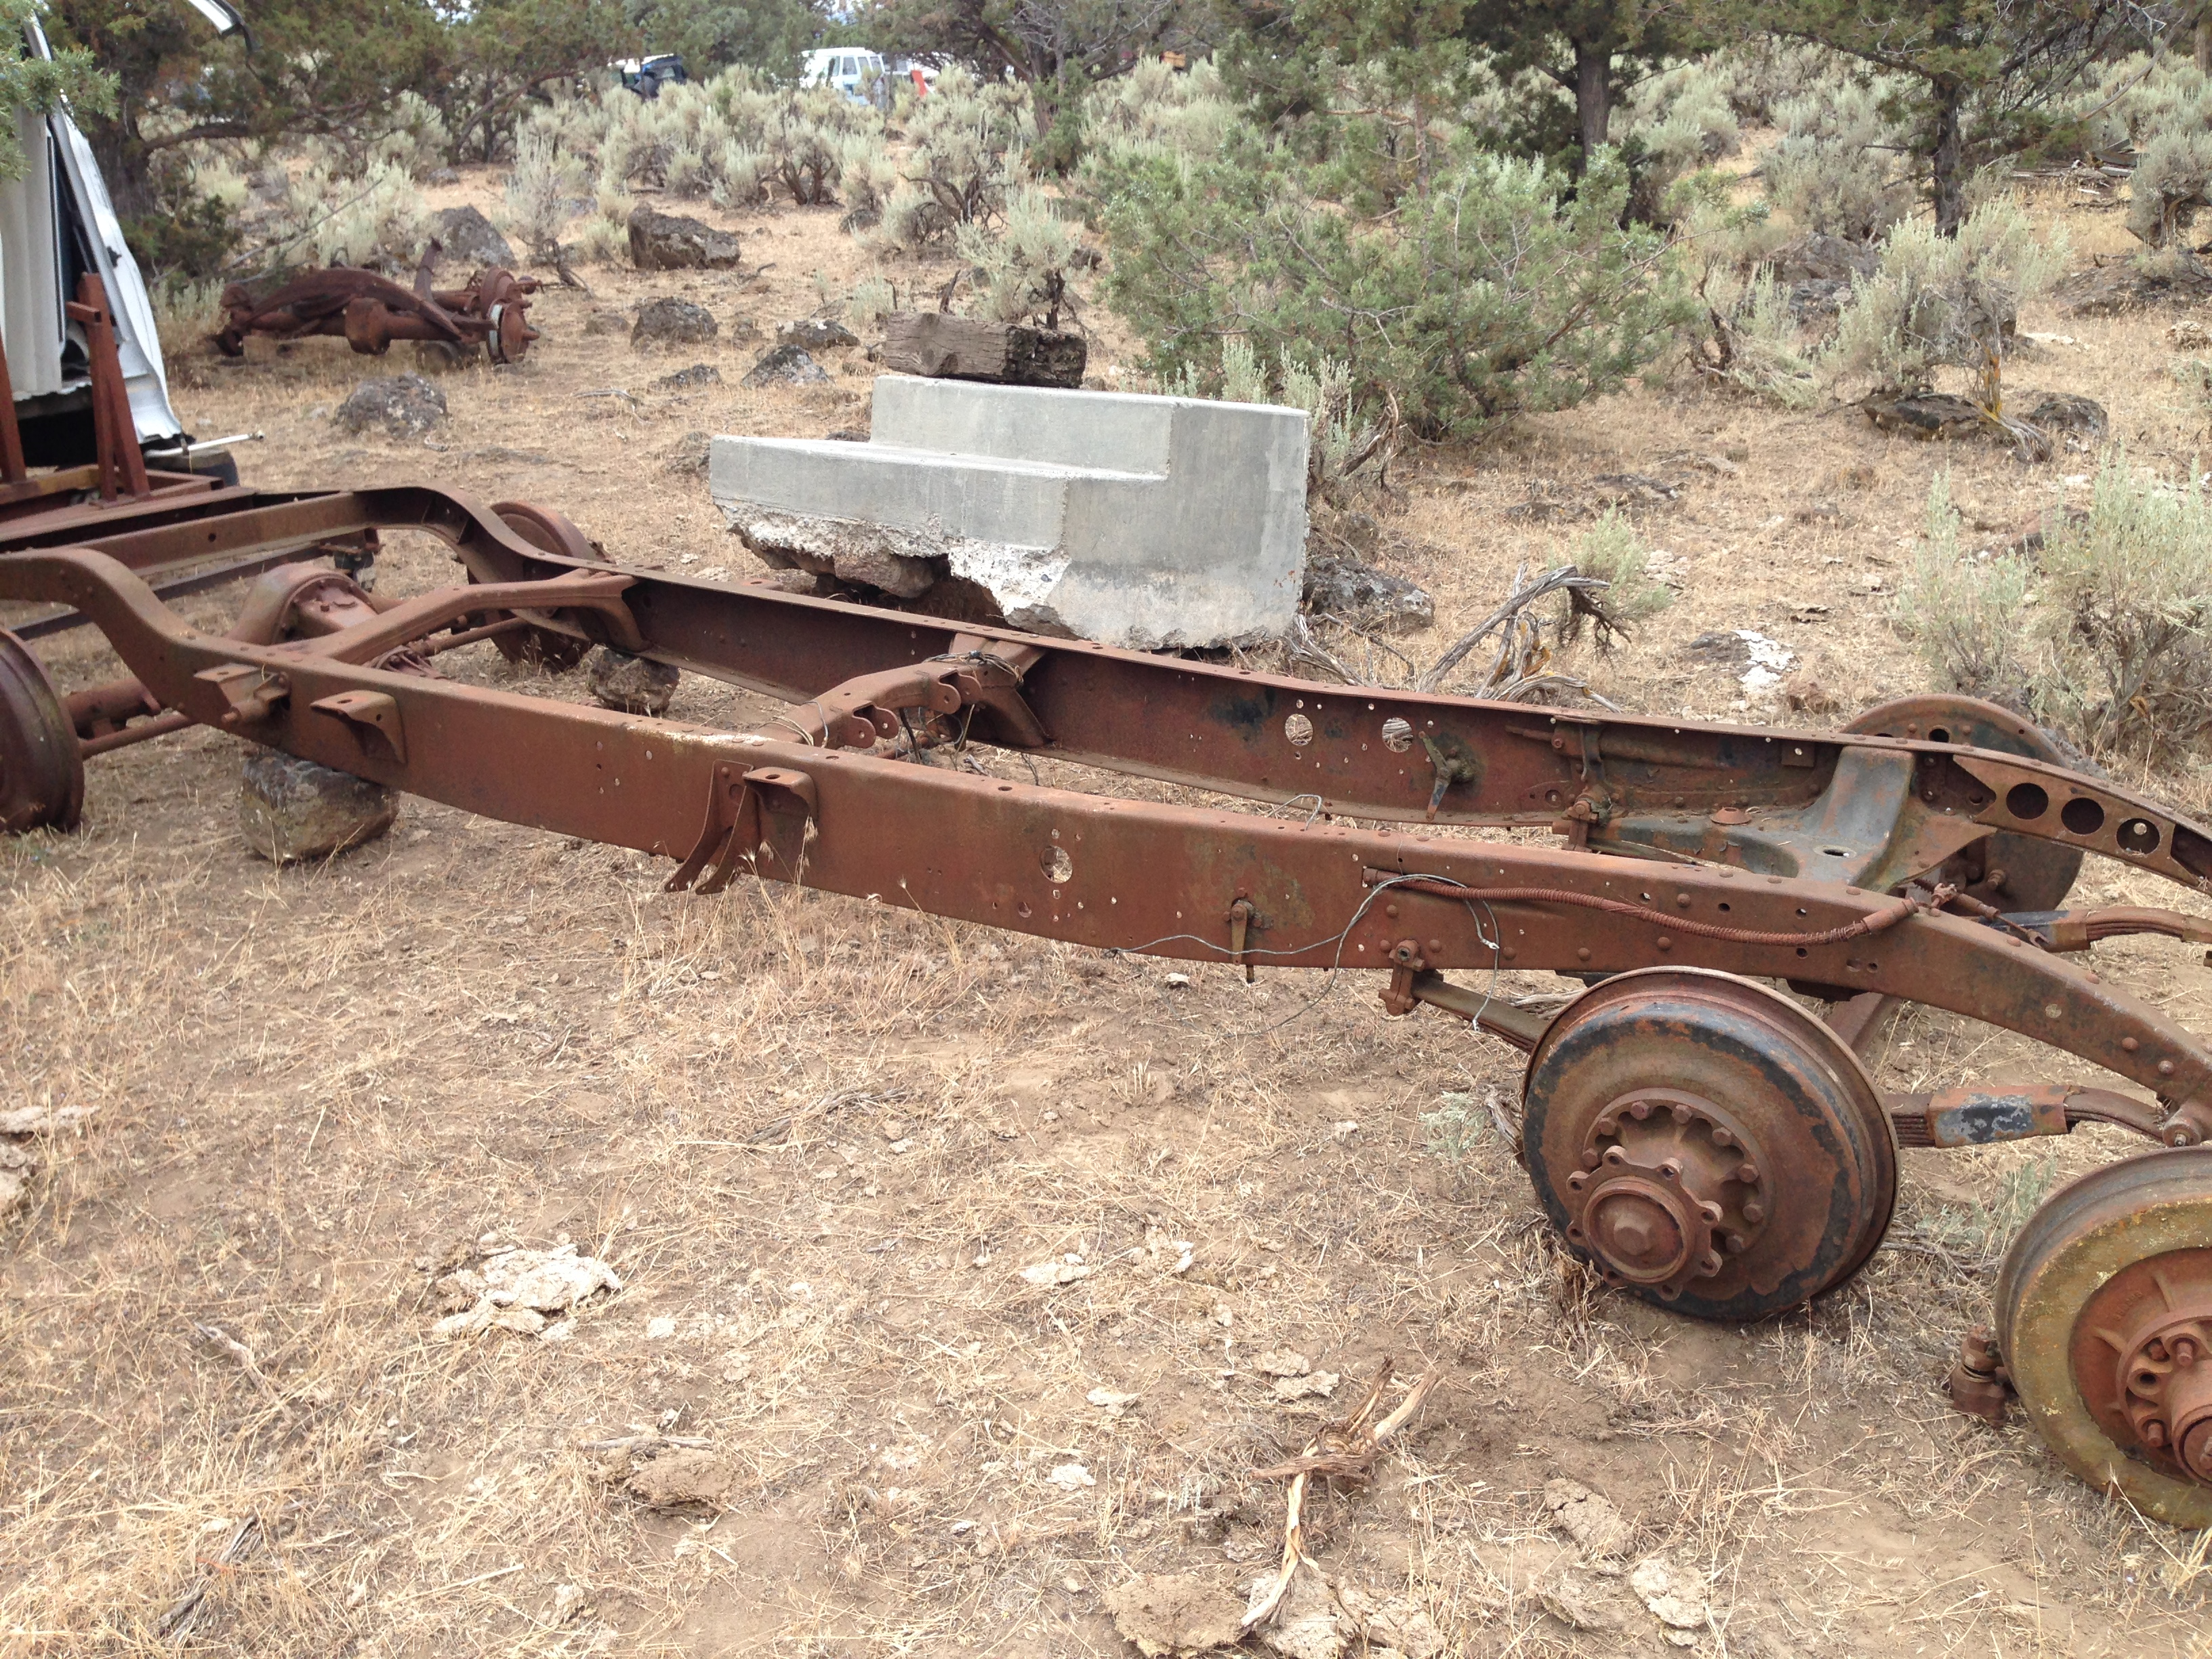 For Sale 1931 1932 1933 Cadillac Parts Cars For Sale Antique Automobile Club Of America